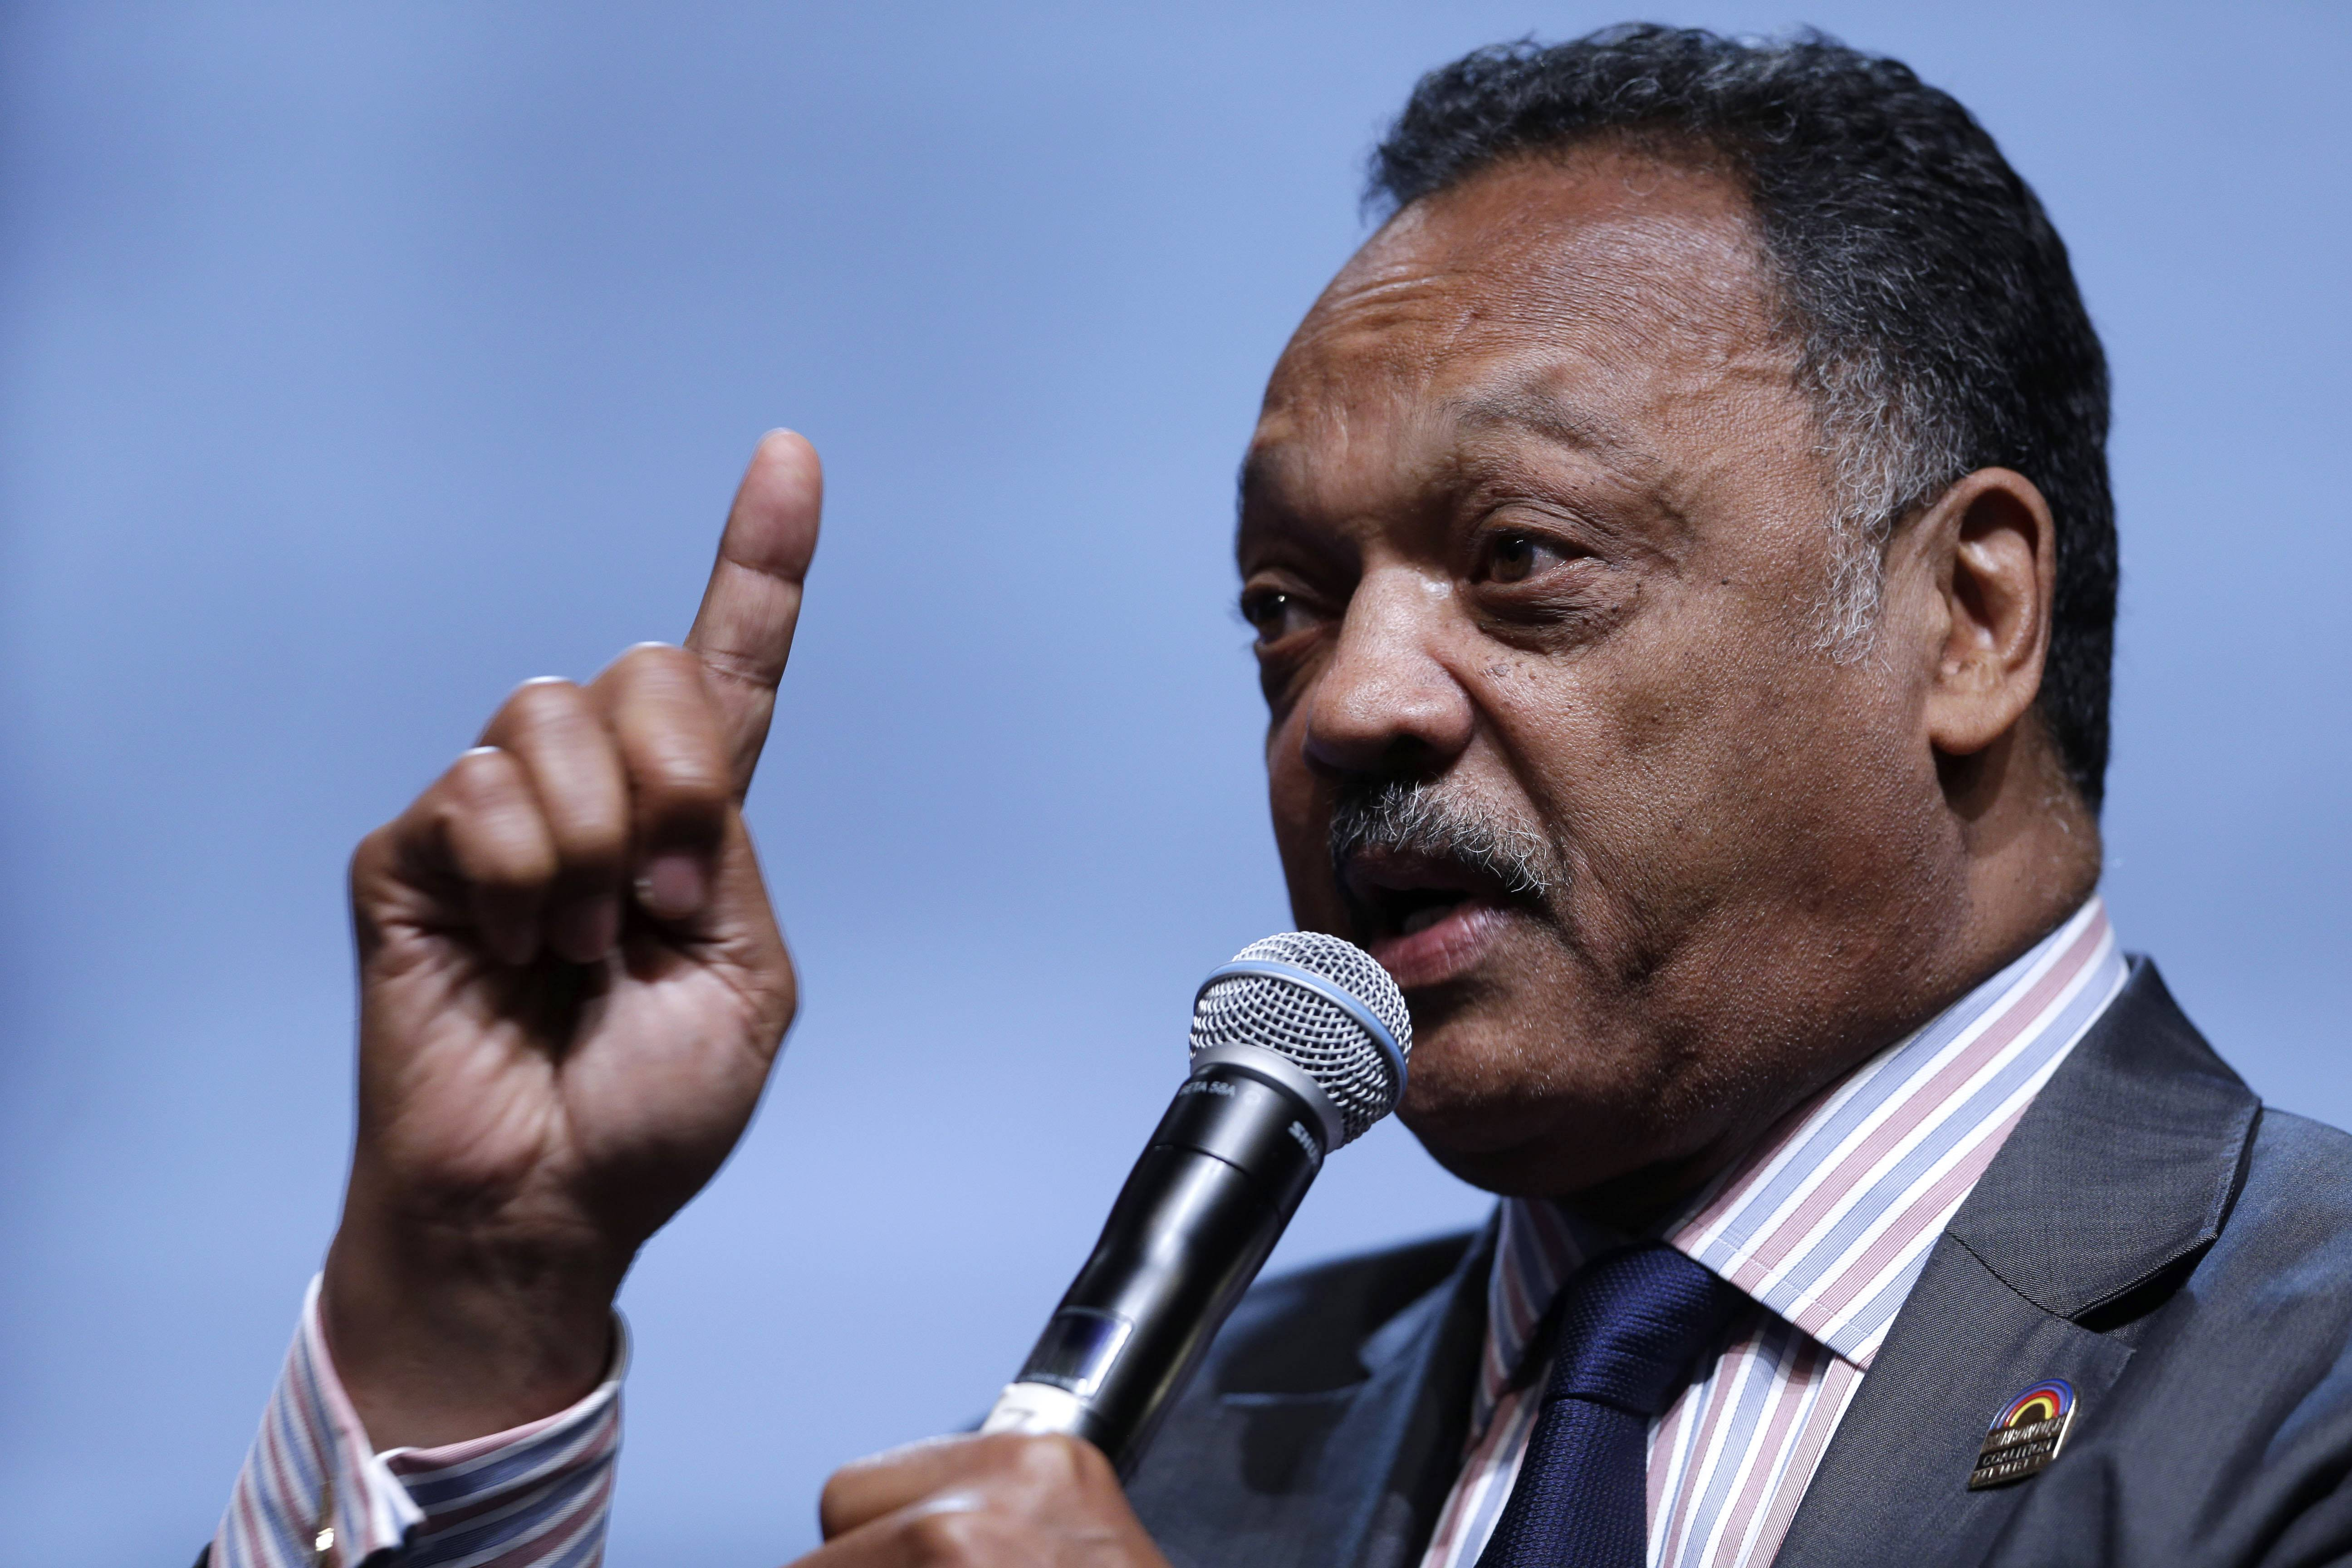 The Rev. Jesse Jackson speaks as he takes part in a panel discussion during the National Urban League's annual conference, in Philadelphia. Jackson is bringing attention to Silicon Valley's poor record of including blacks and Latinos in hiring, board appointments and startup funding.